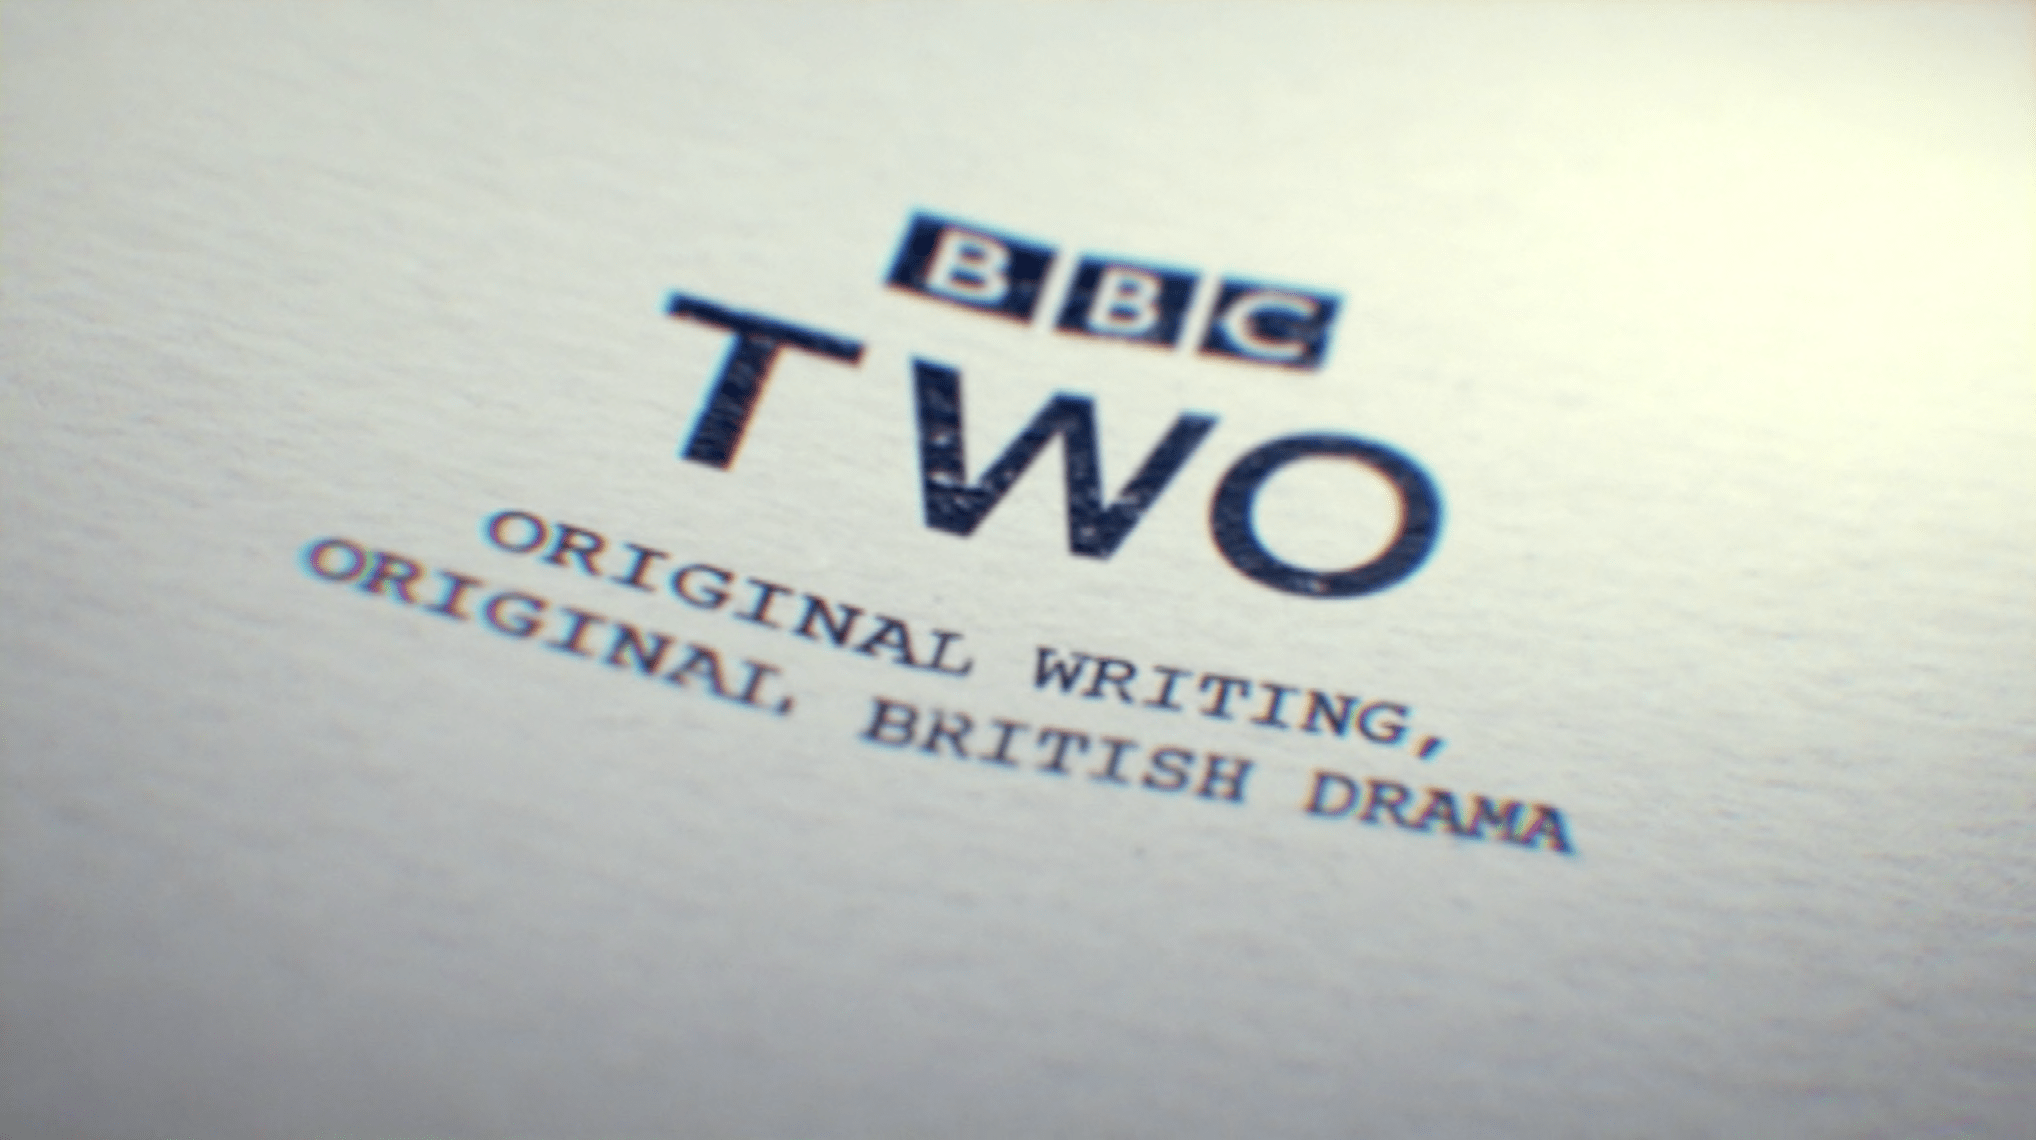 ORIGINAL BRTISH DRAMA BBC CREATIVE